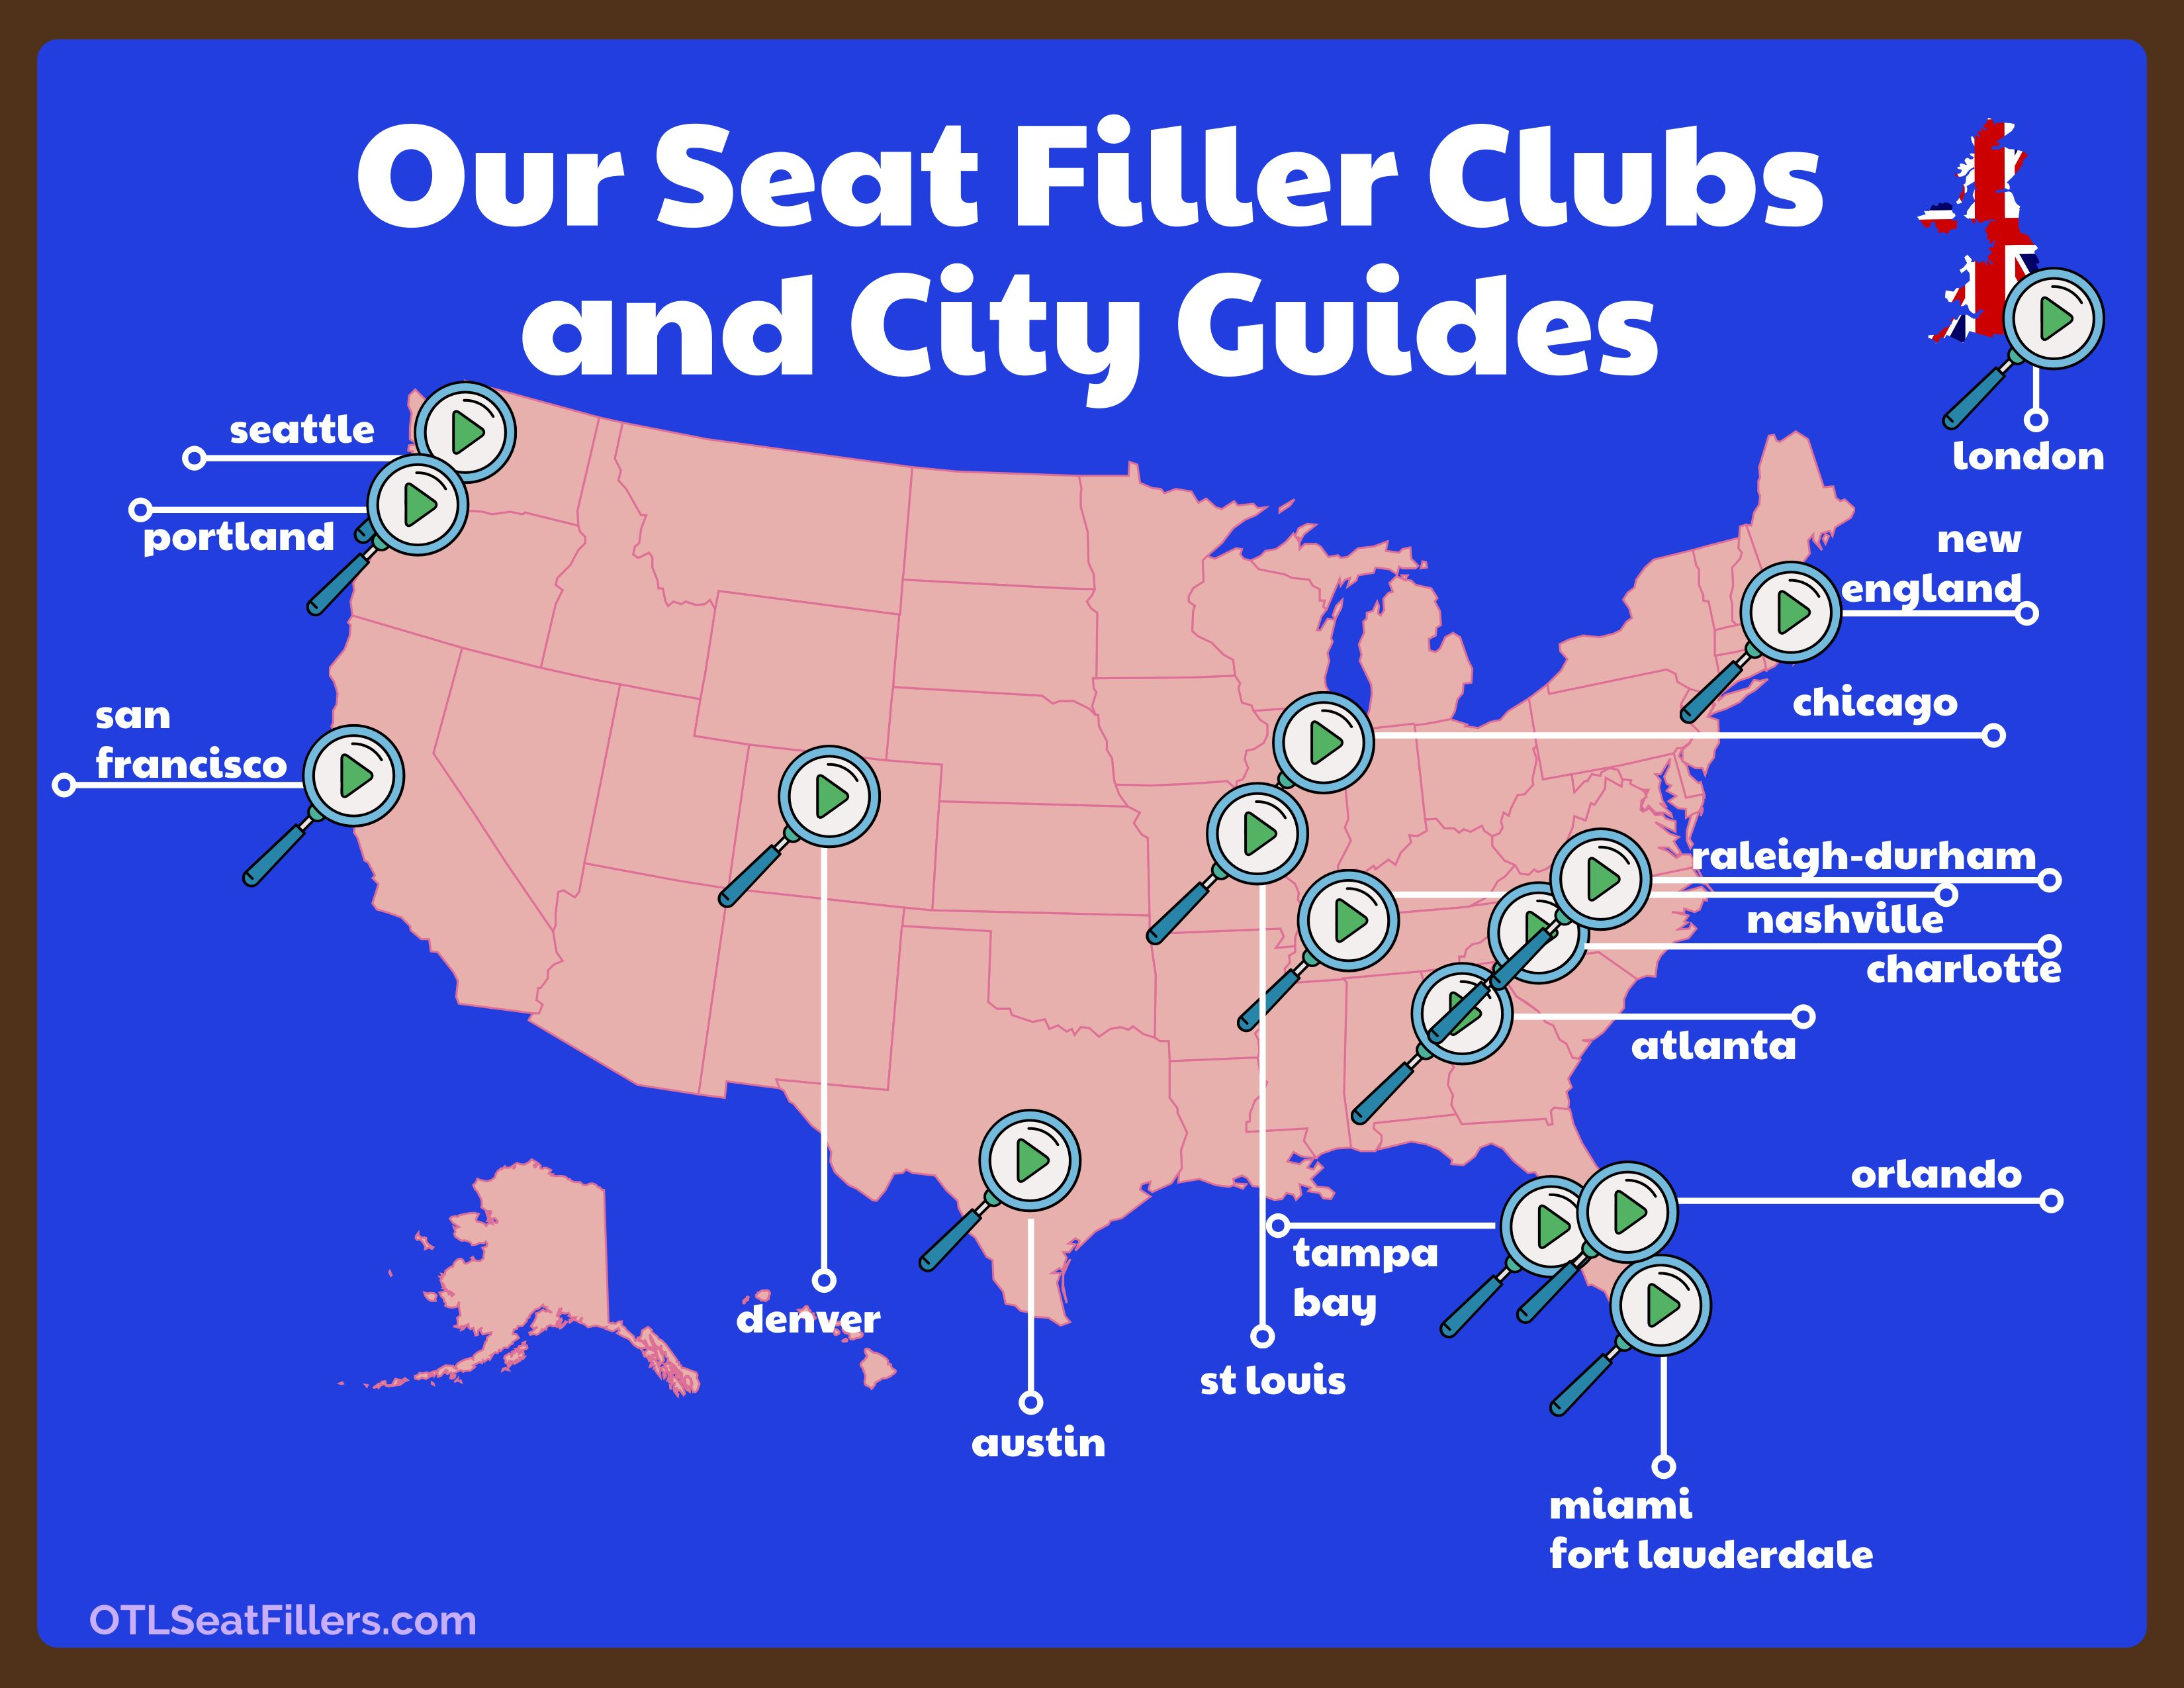 OTL Seat Filler Clubs provide city guides with entertainment information as well as restaurants, sports, discounts and more